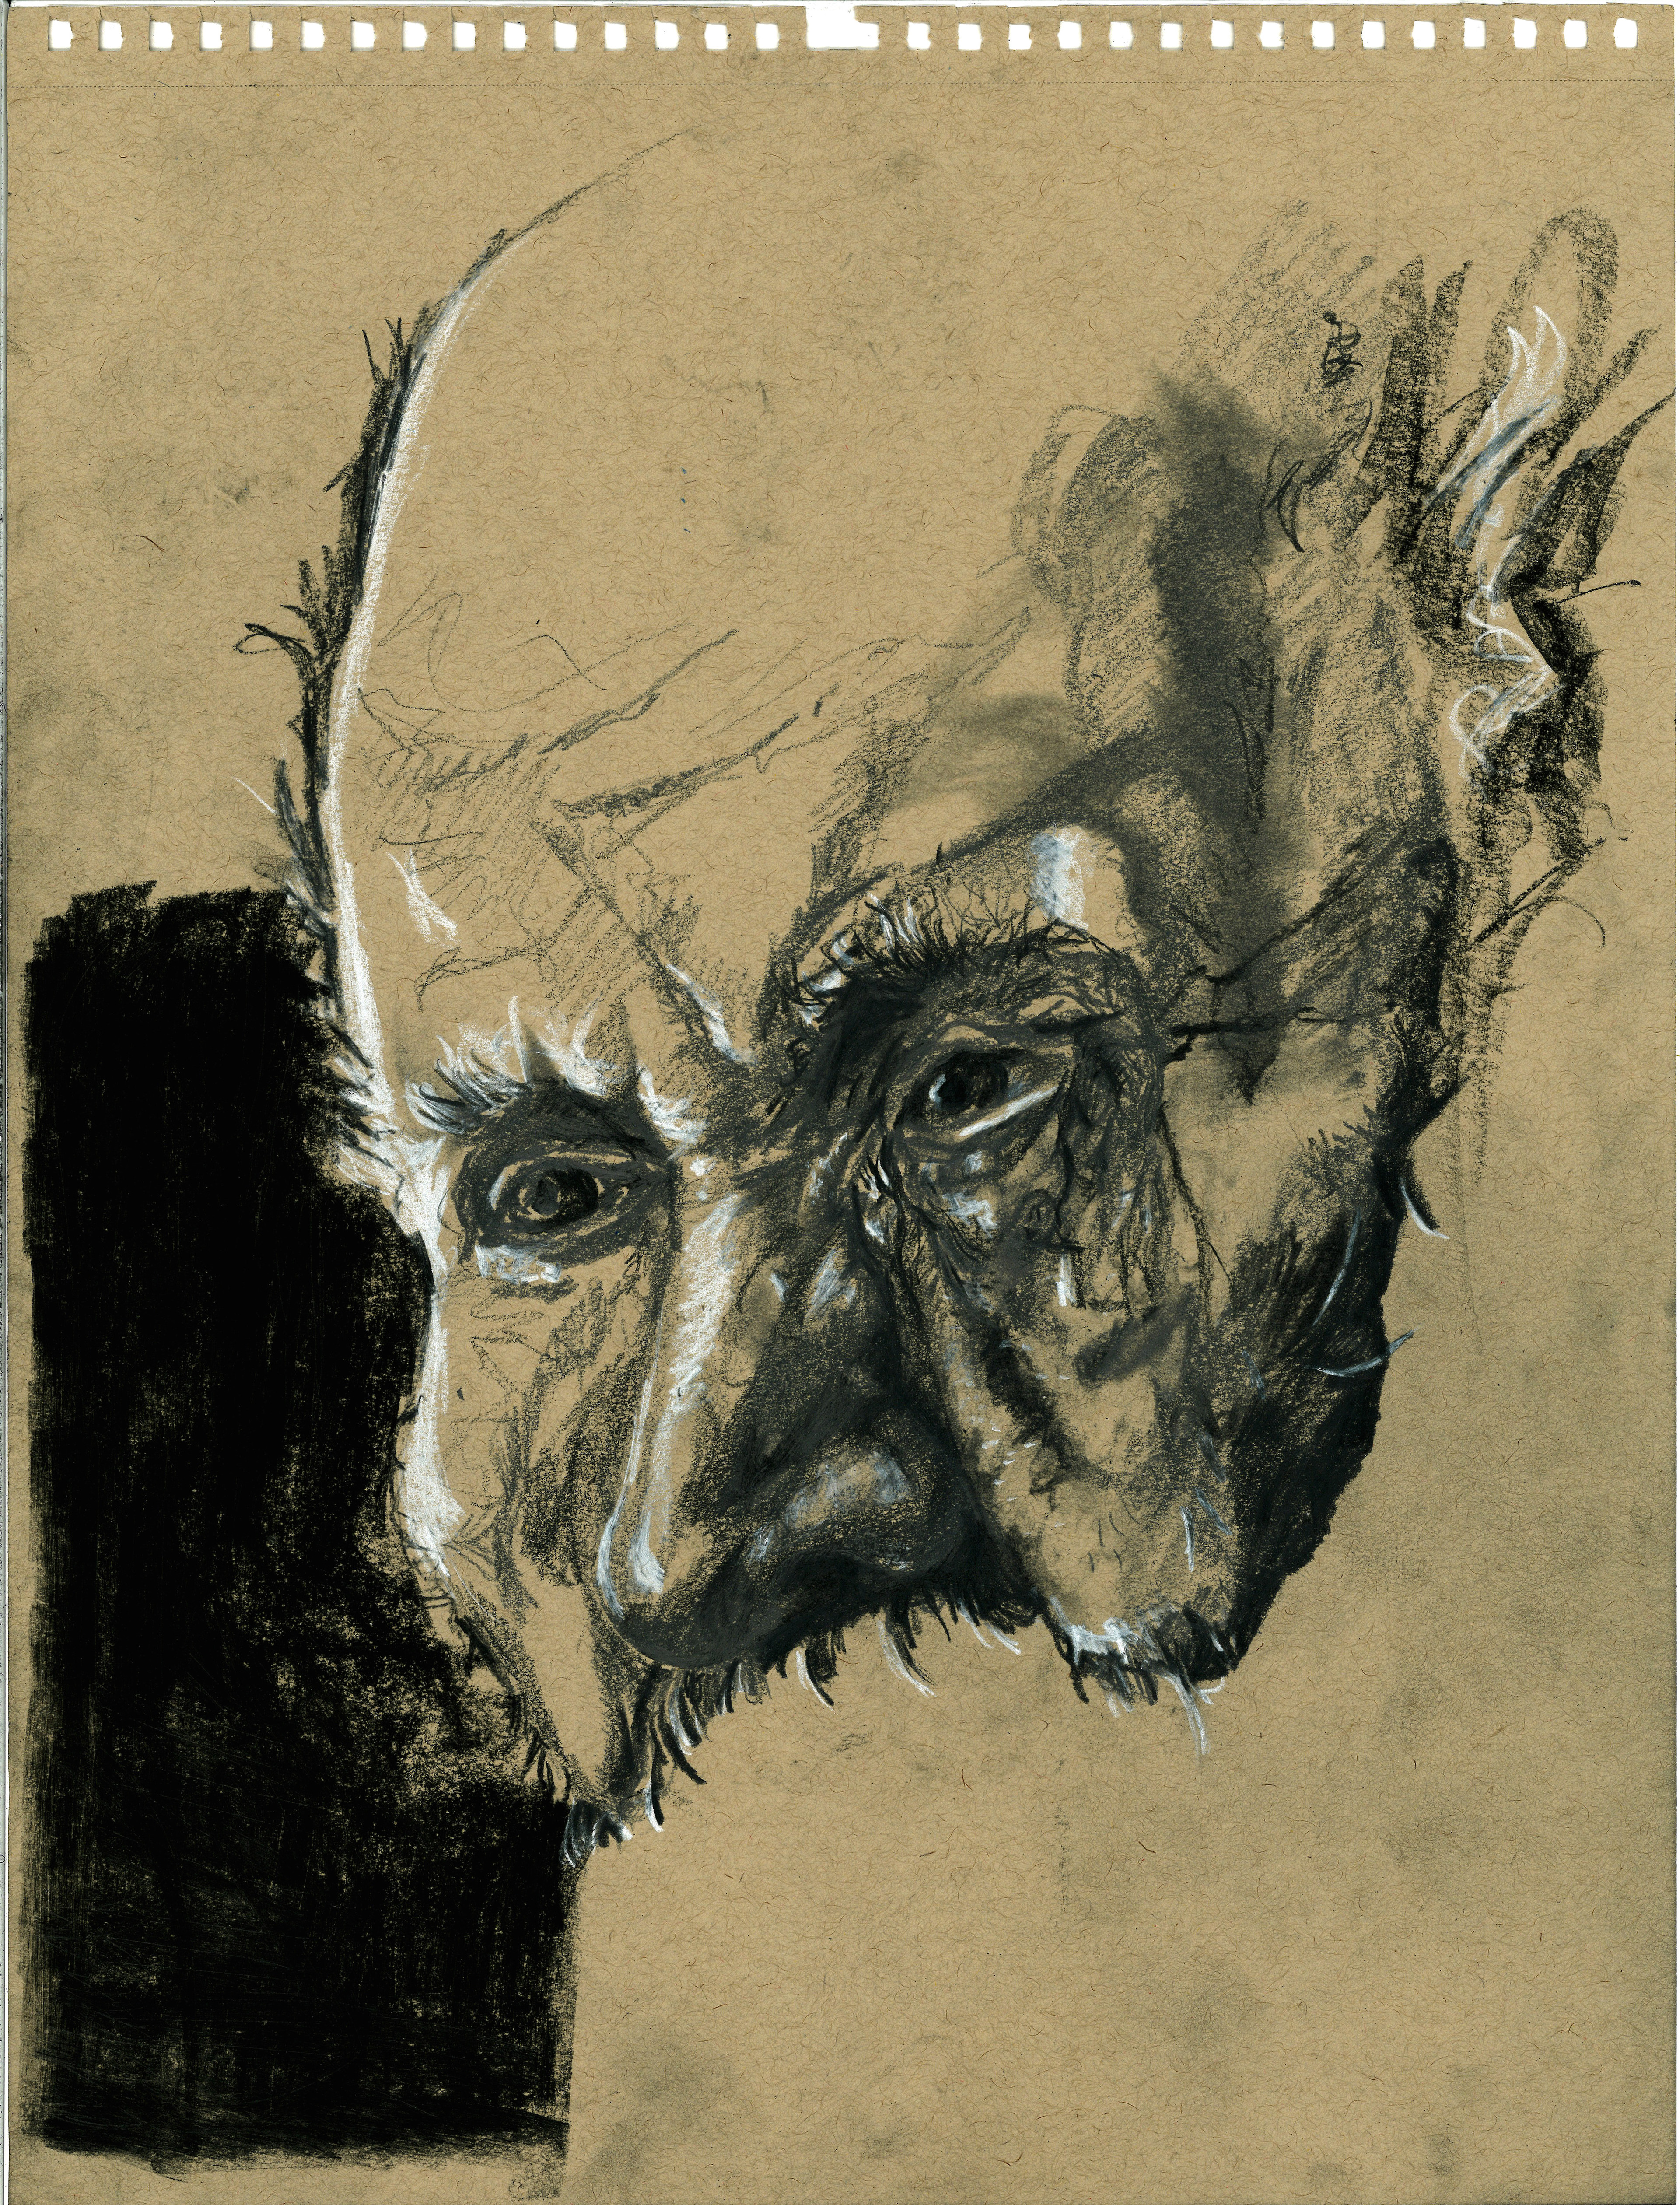 Pensive; Charcoal, Lead, Graphite - multiple mediums on tan sketch paper